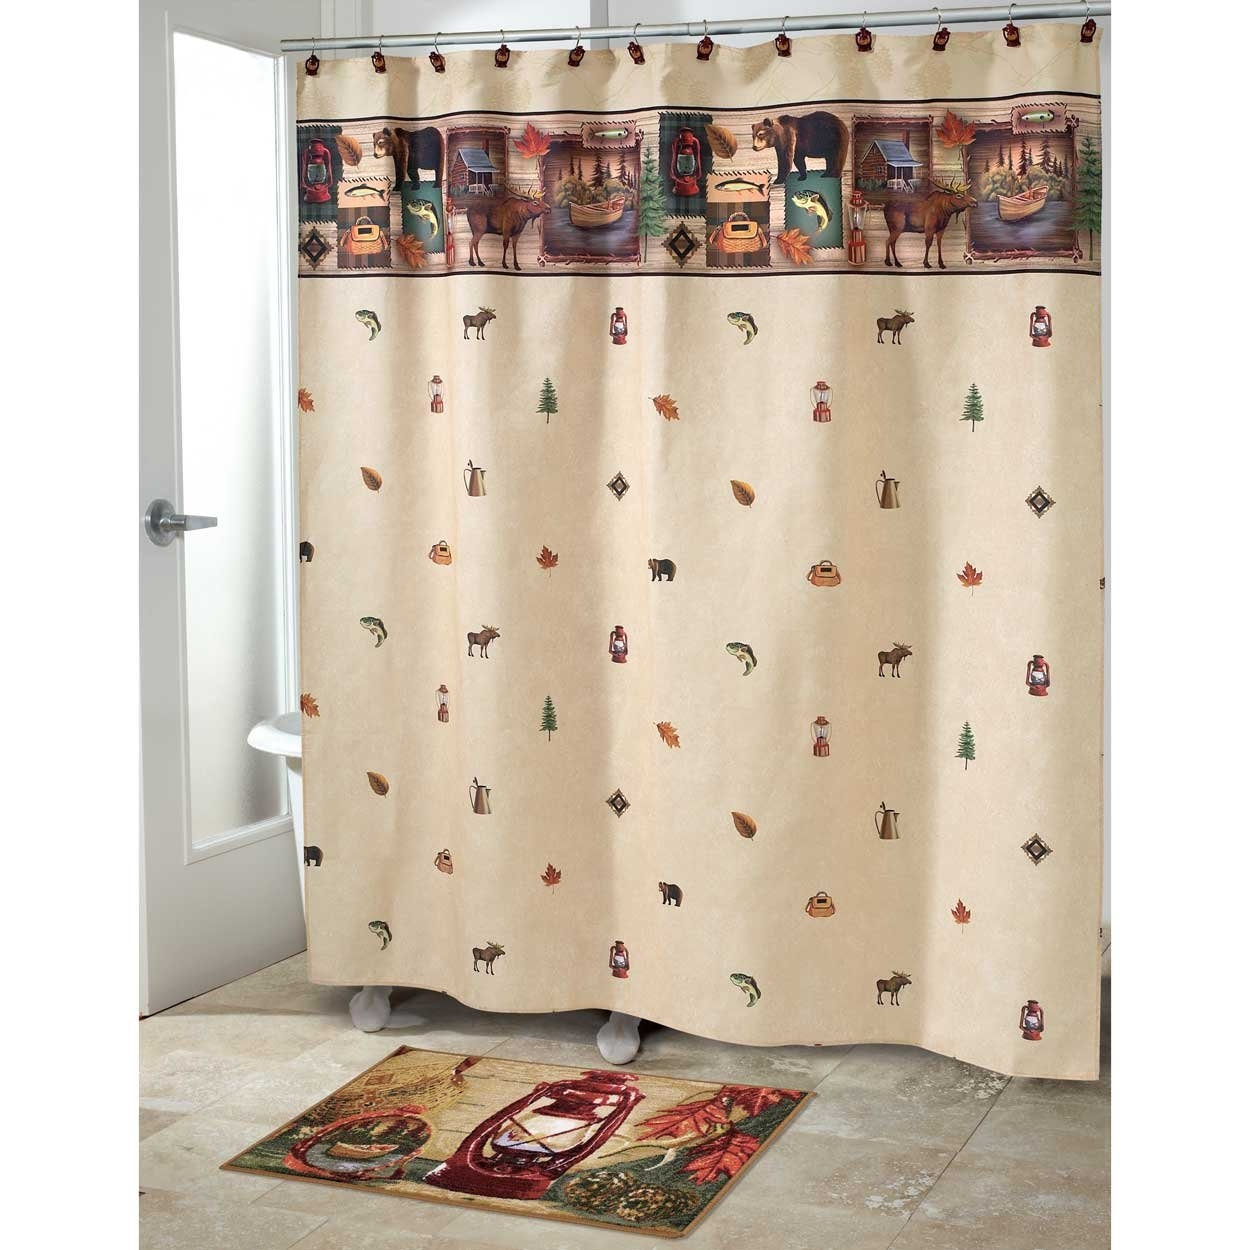 Adirondack Pine Shower Curtain Bathroom Accessories Designs